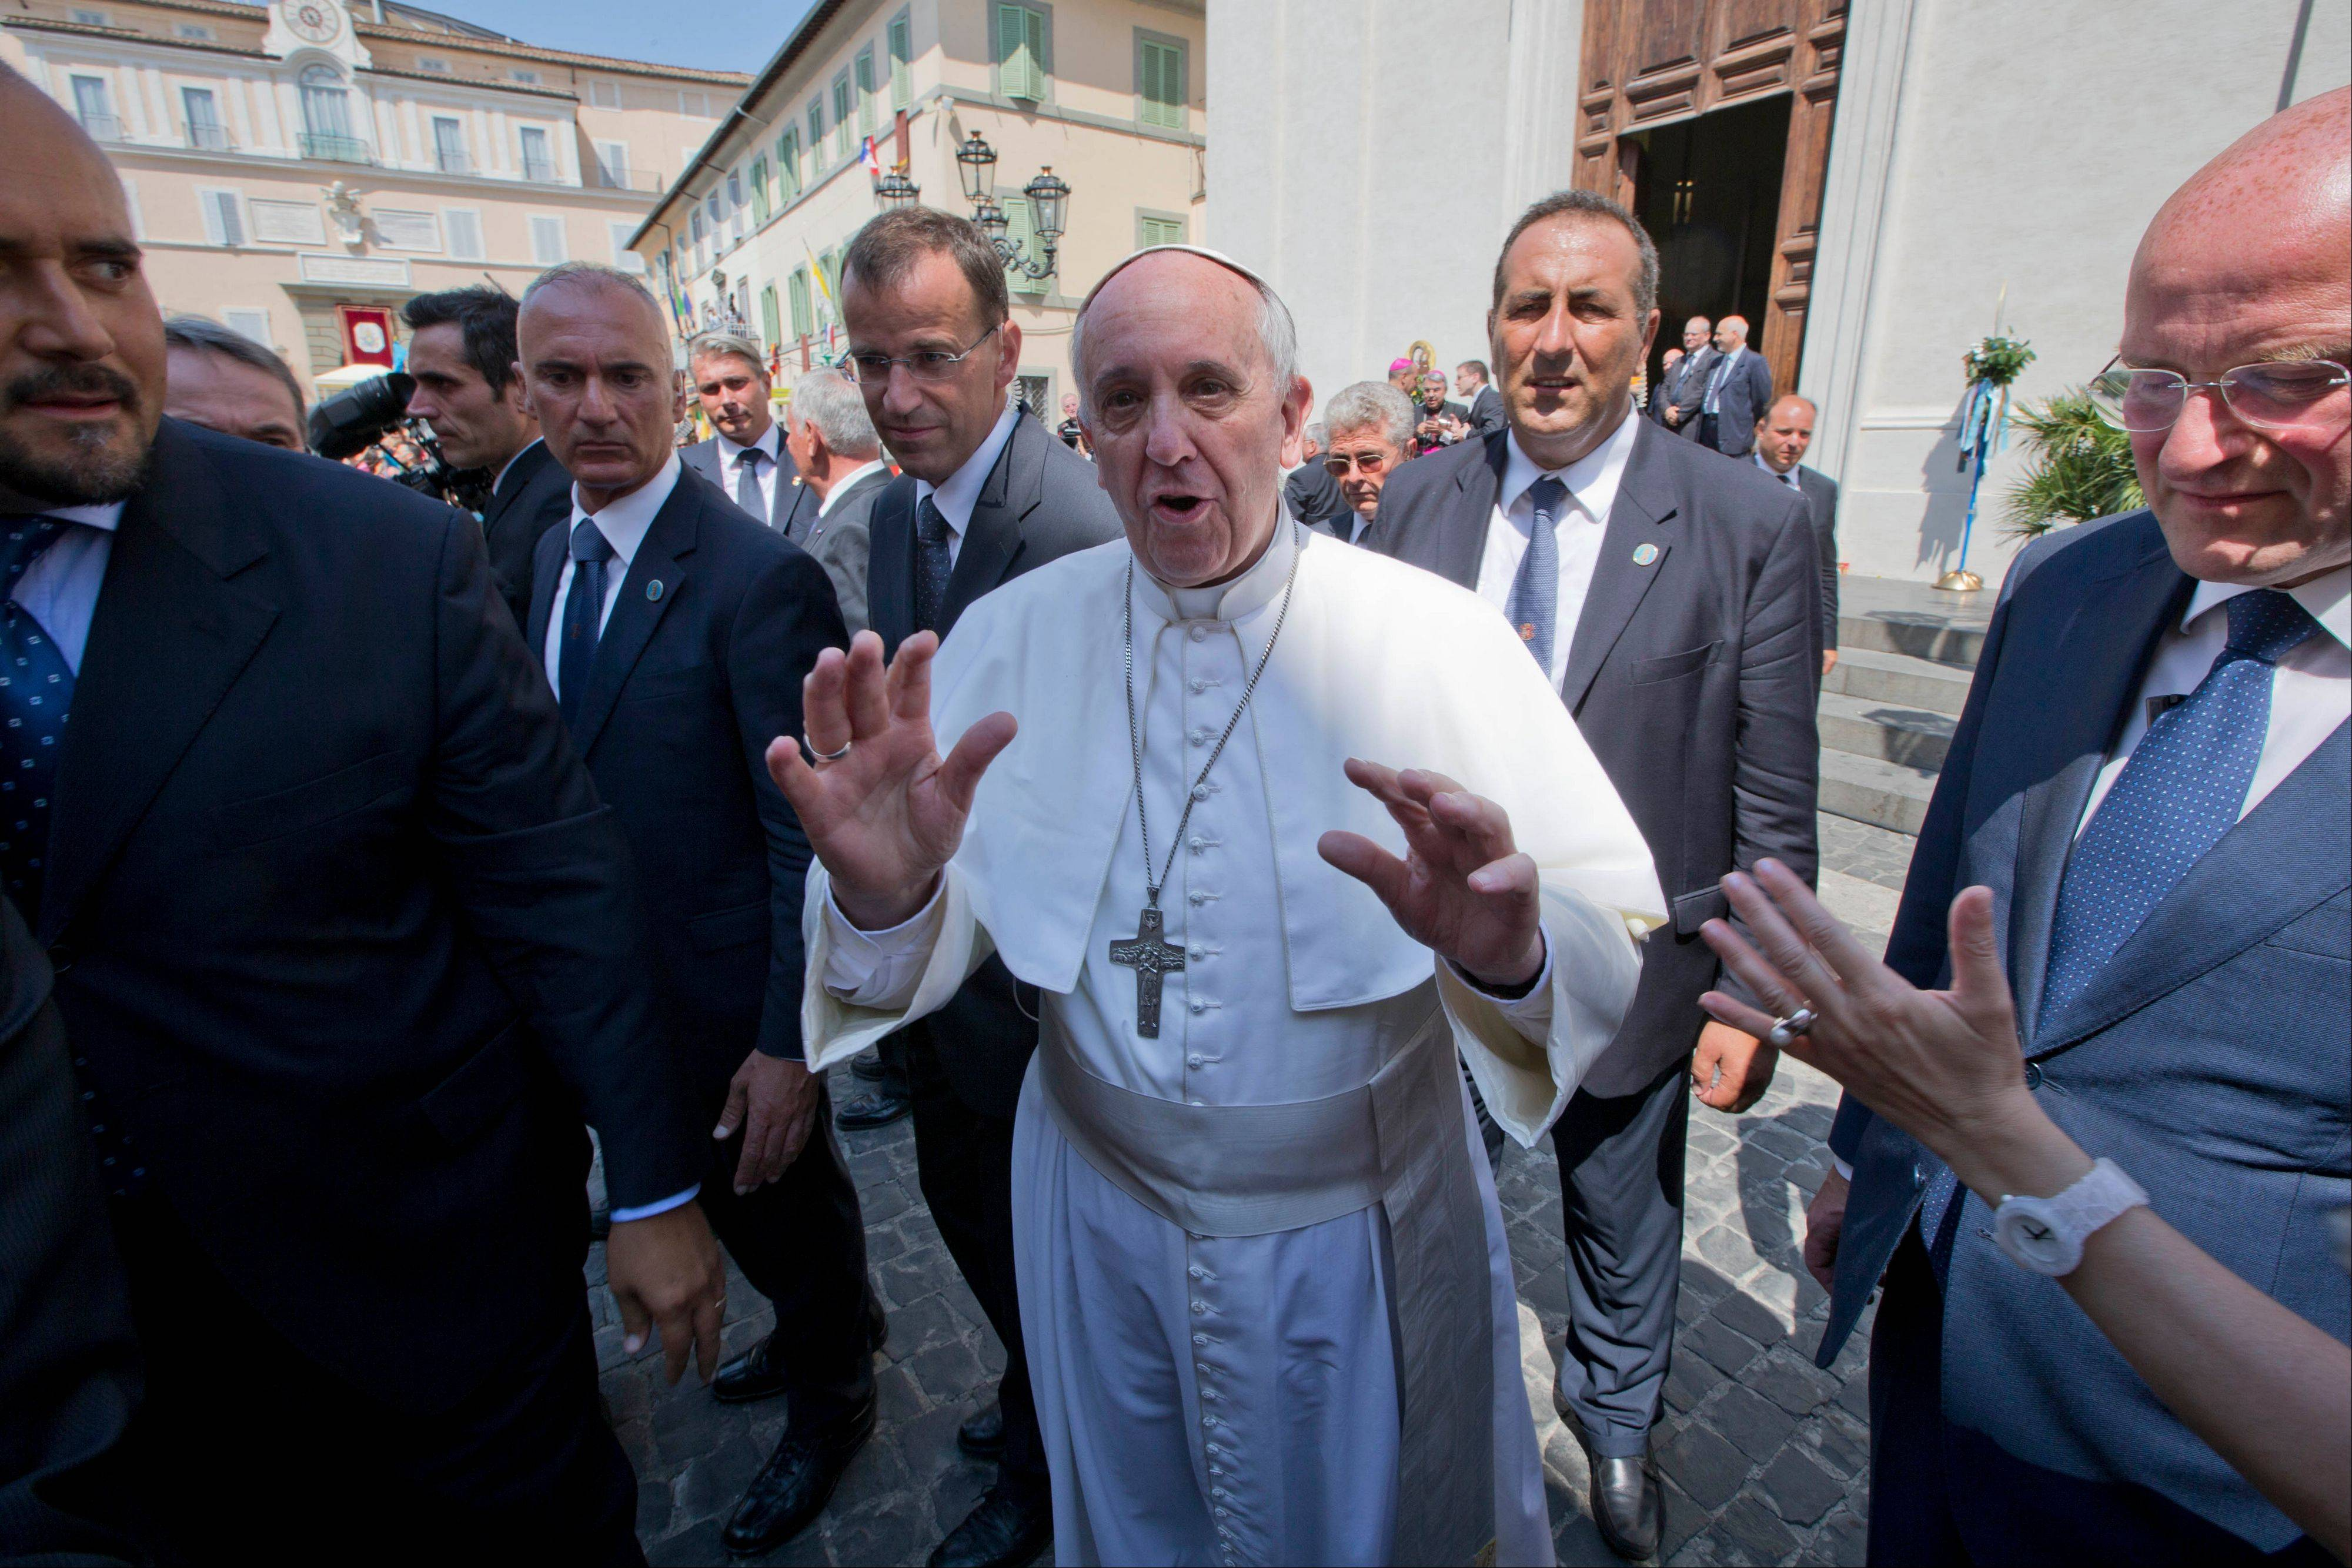 Pope Francis said at the end of a Mass he celebrated Thursday that he wanted to assure his prayers to the victims, their families, the wounded and all those suffering in Egypt. He urged prayers for �peace, dialogue and reconciliation for that dear land.�